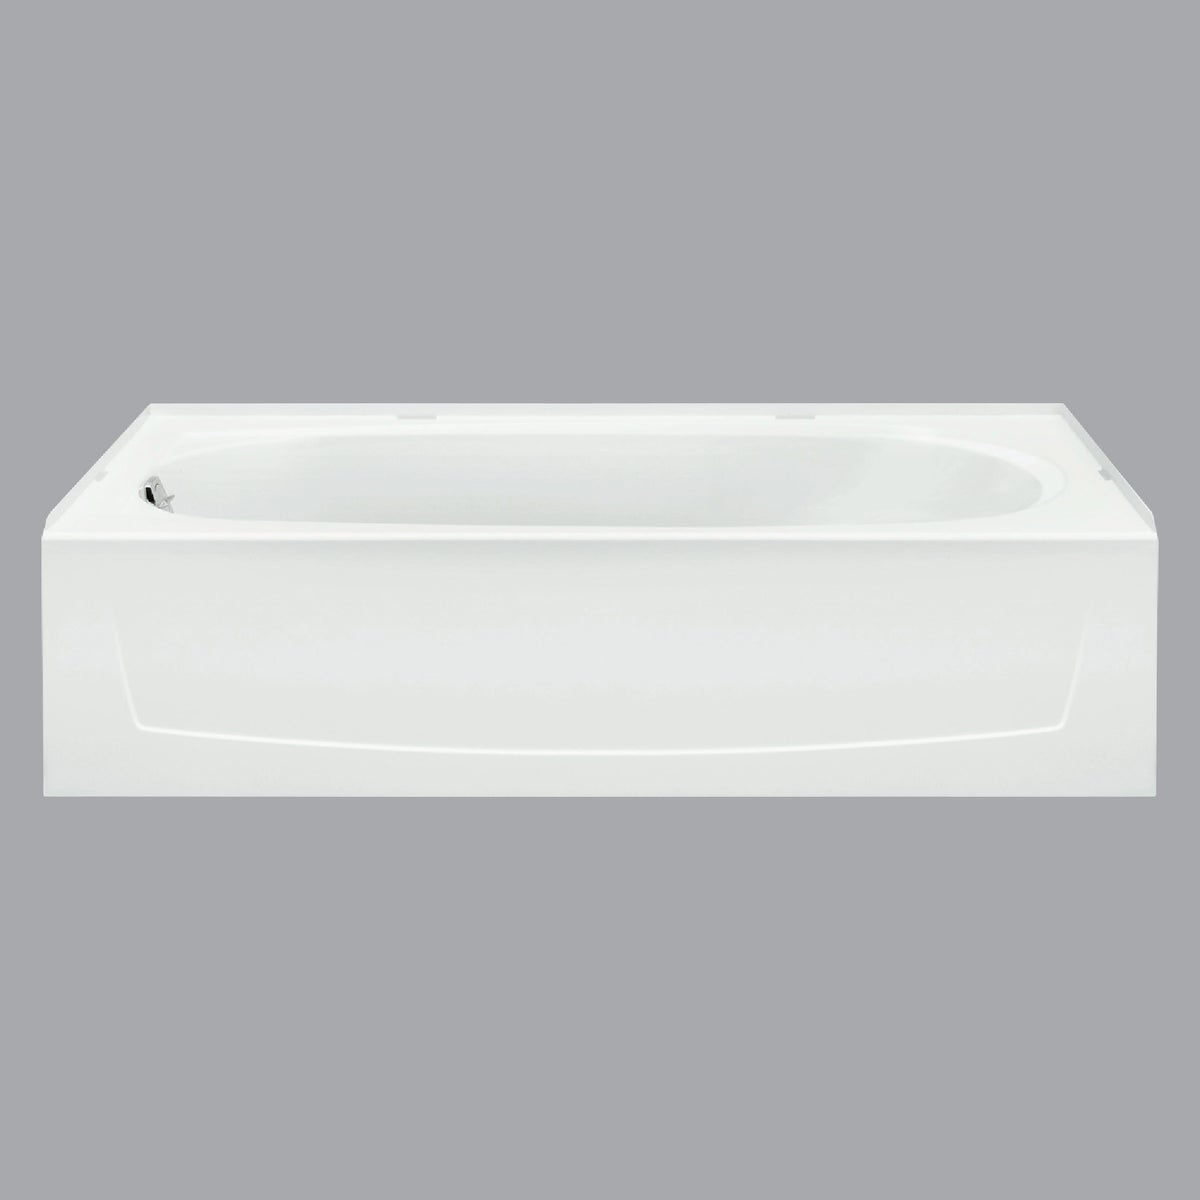 WHITE PERFORMA LH TUB